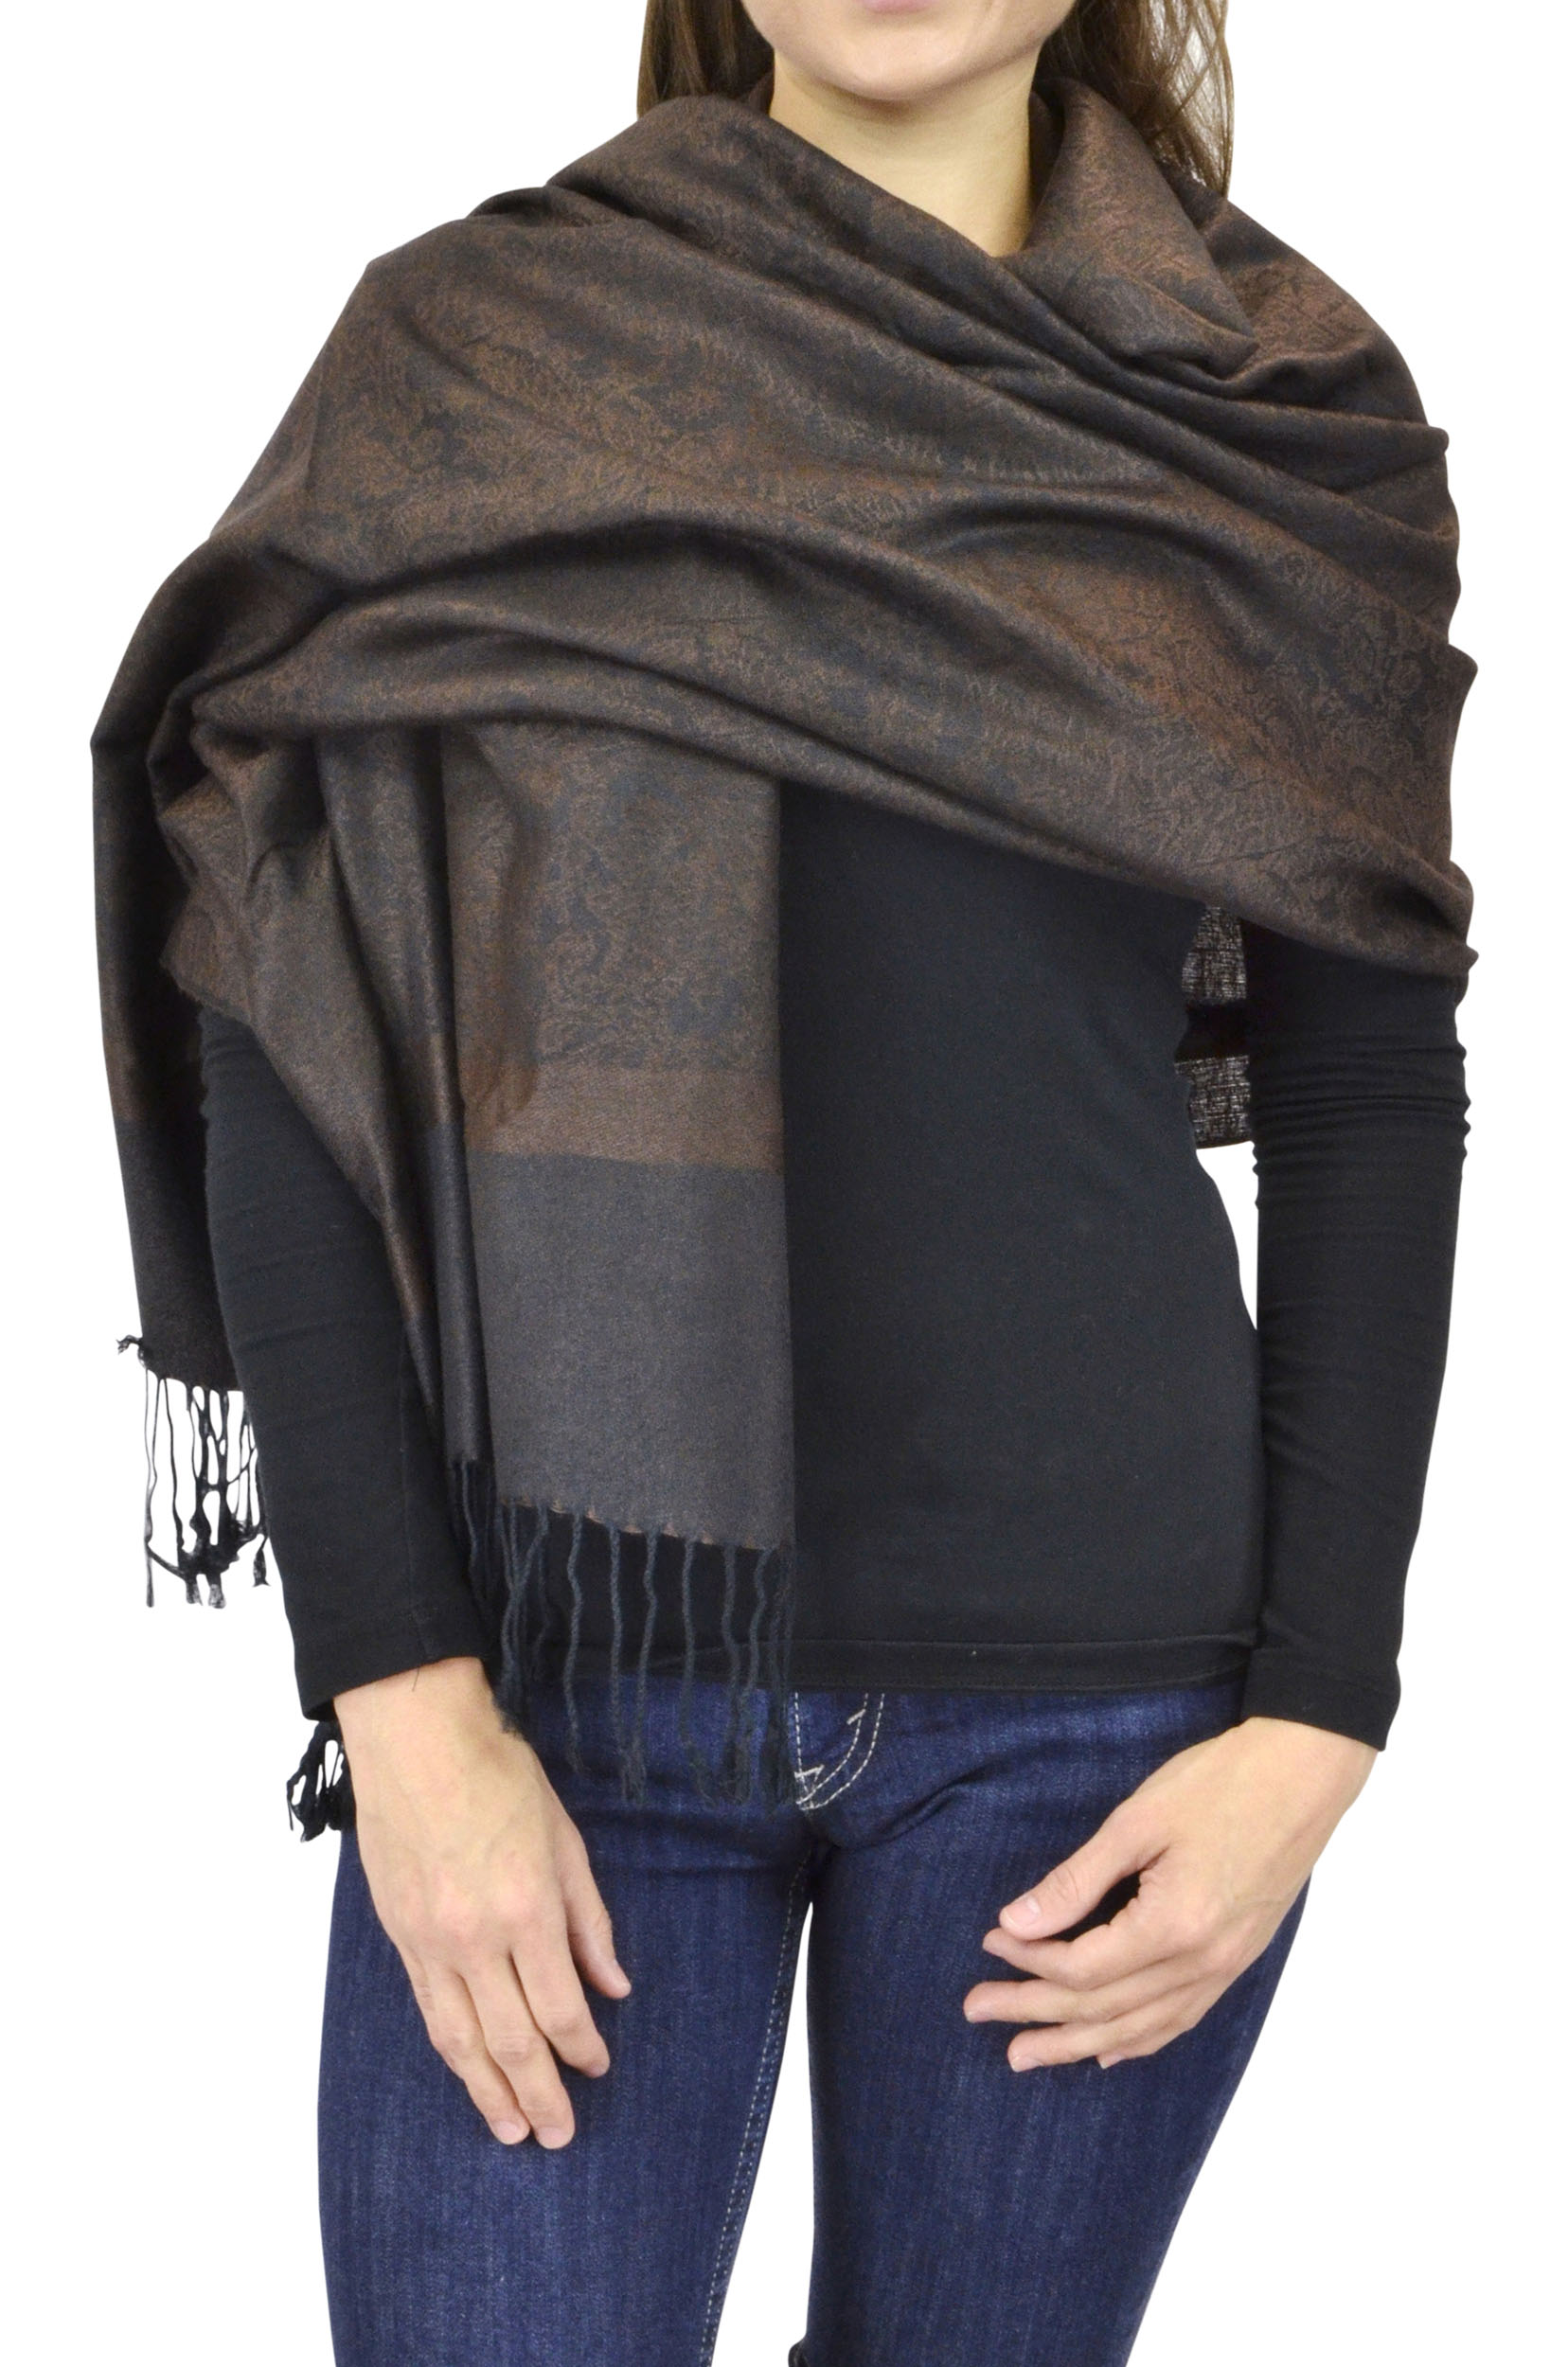 Belle Donne Women's Paisley Pashmina Shawl Wrap Scarf - Chocolate Brown